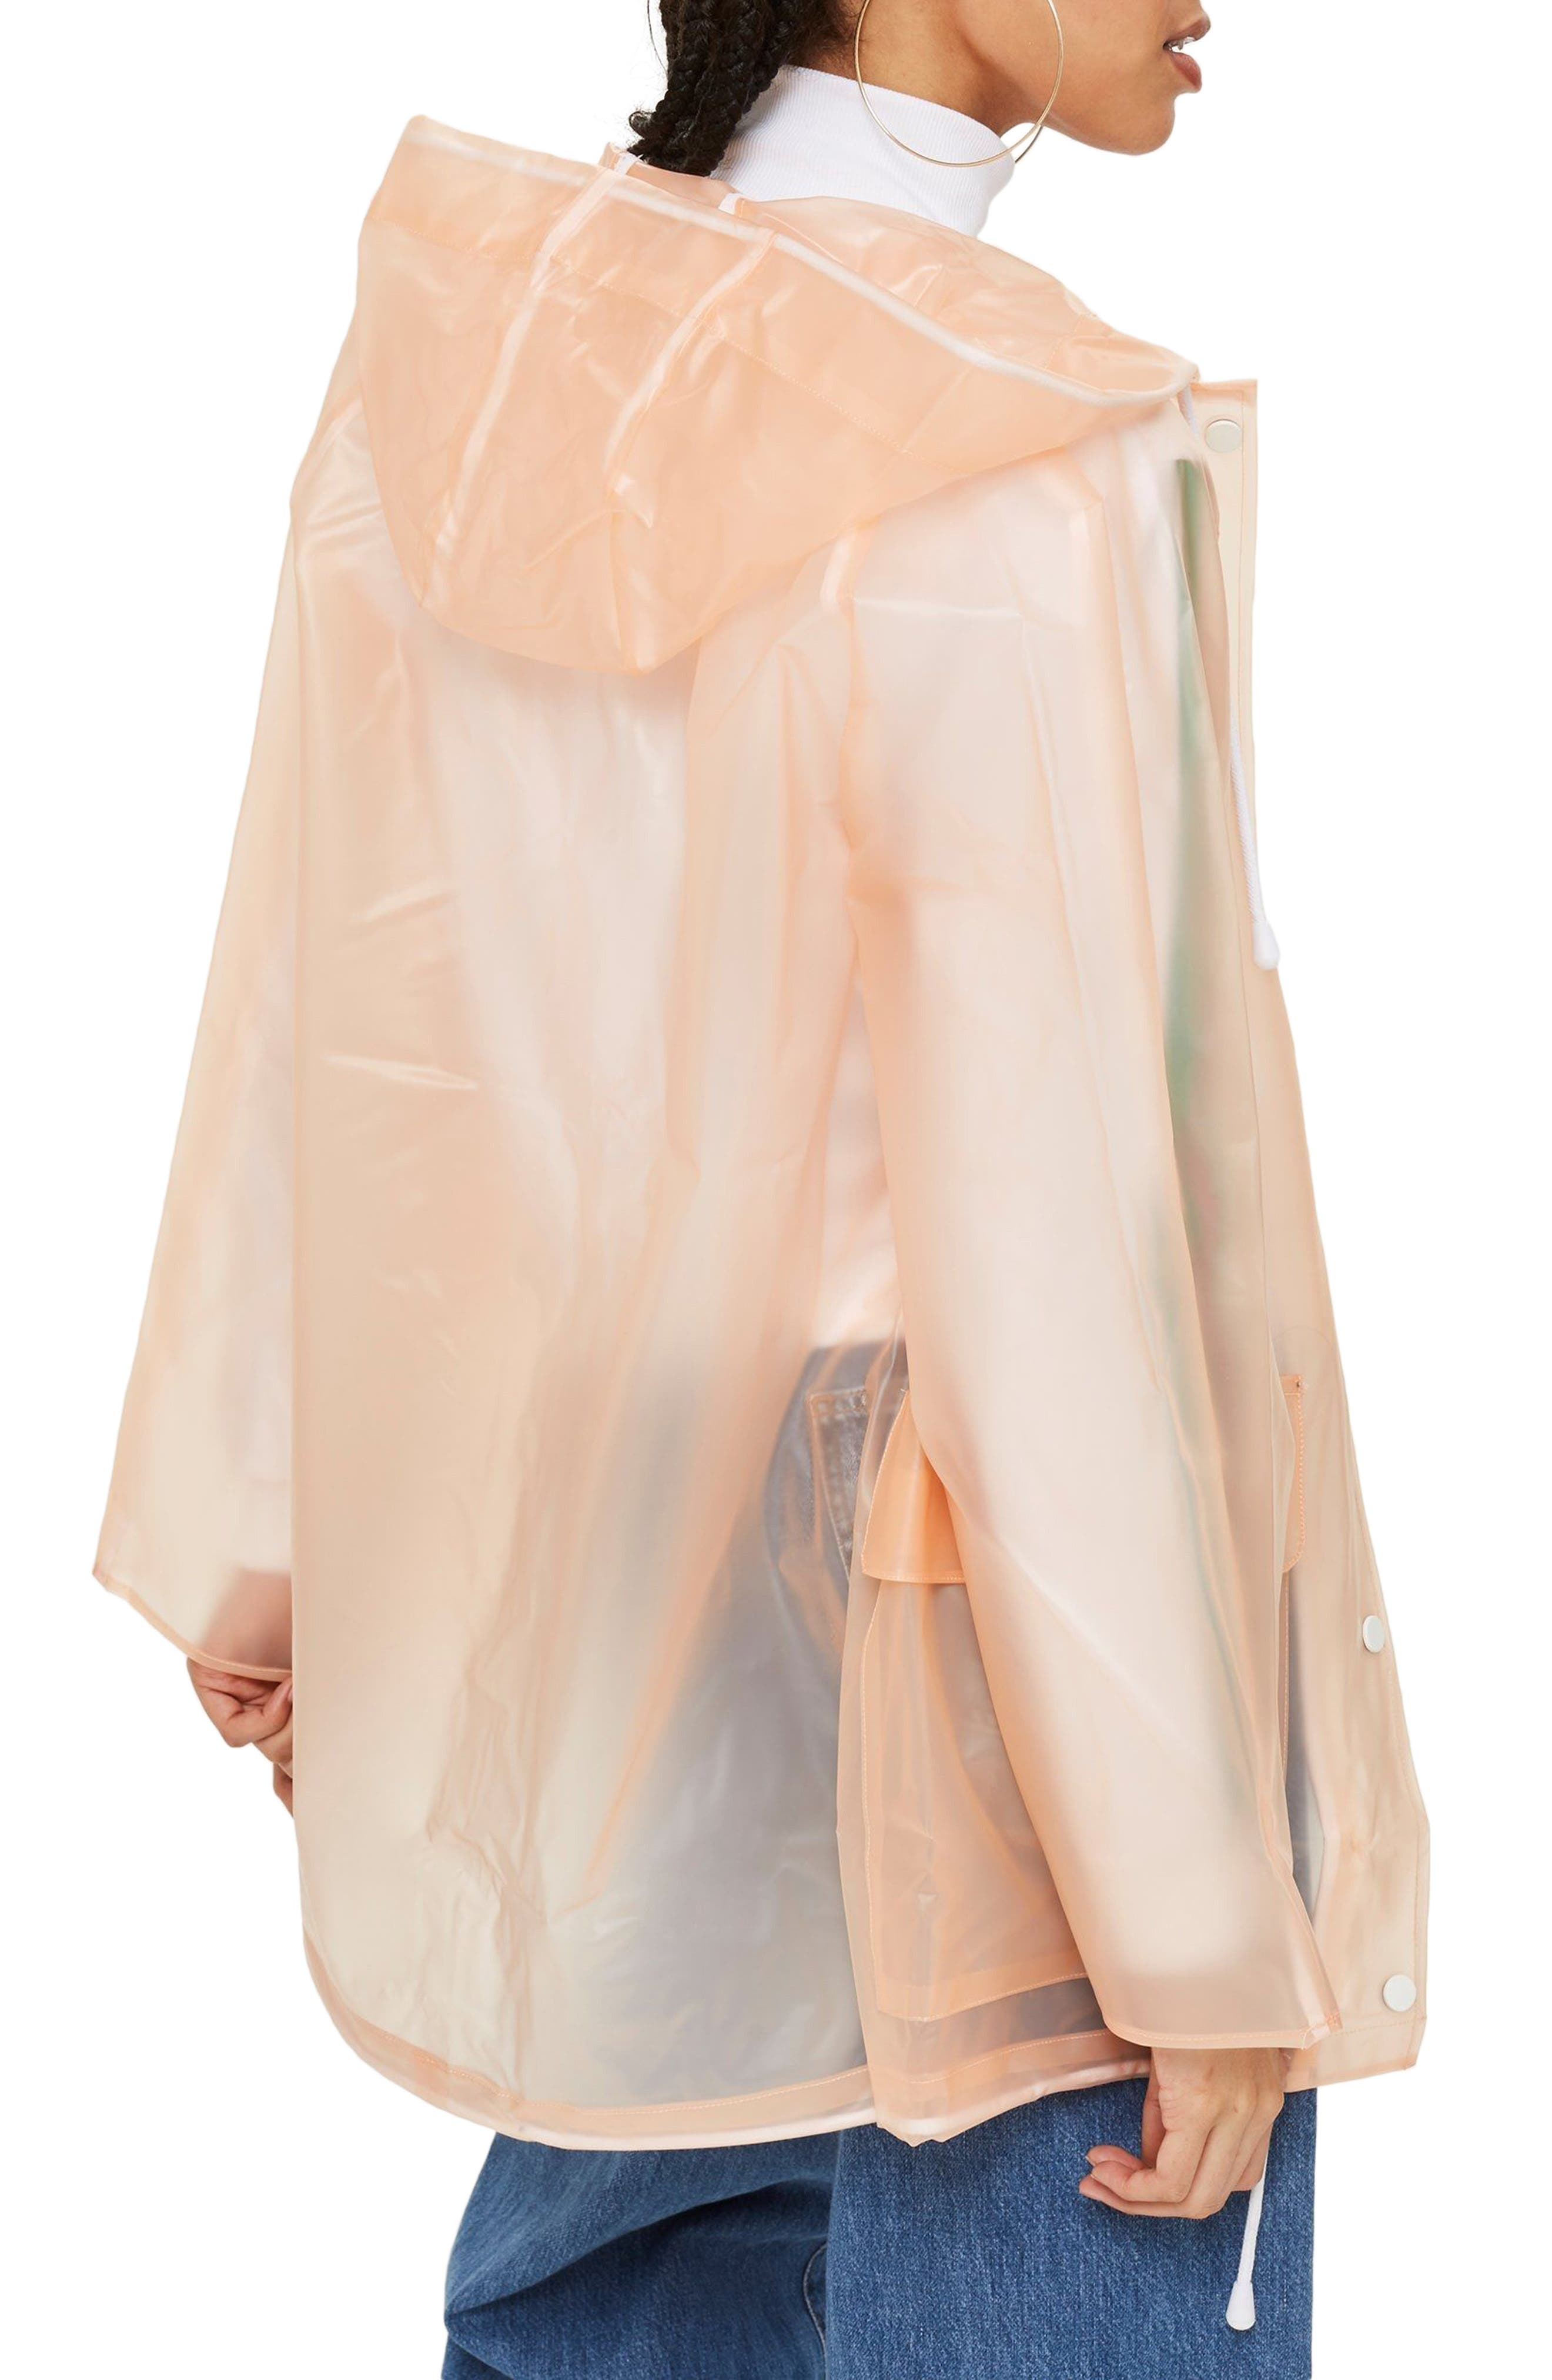 Frosted Marge Mac Rain Jacket,                             Alternate thumbnail 2, color,                             Peach Multi